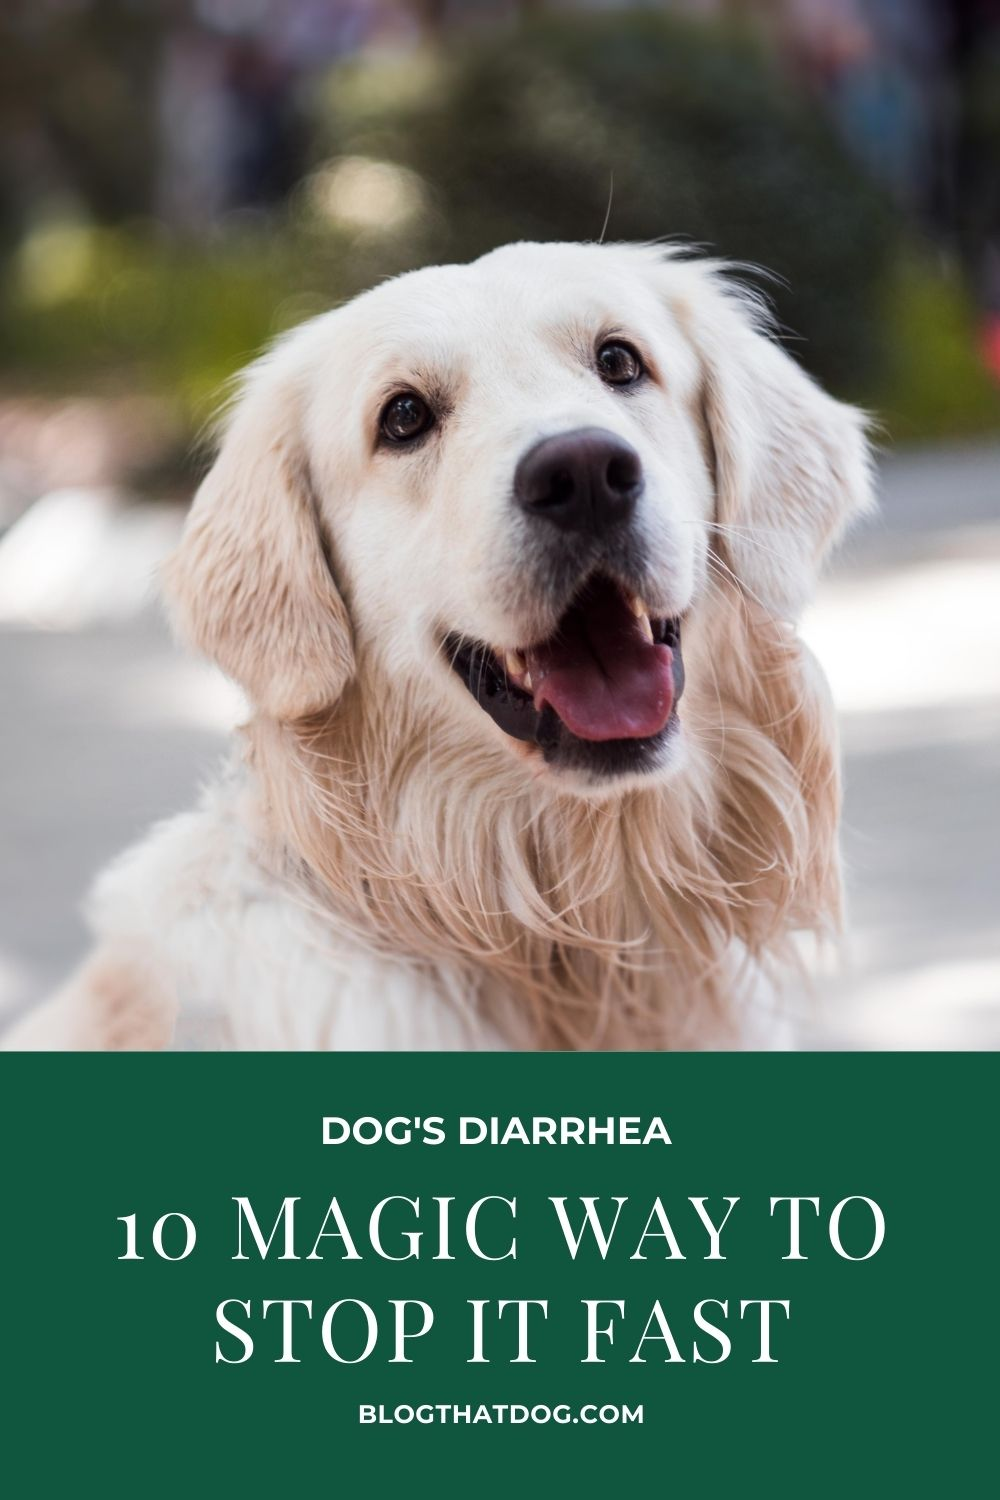 How to stop diarrhea for dog fast